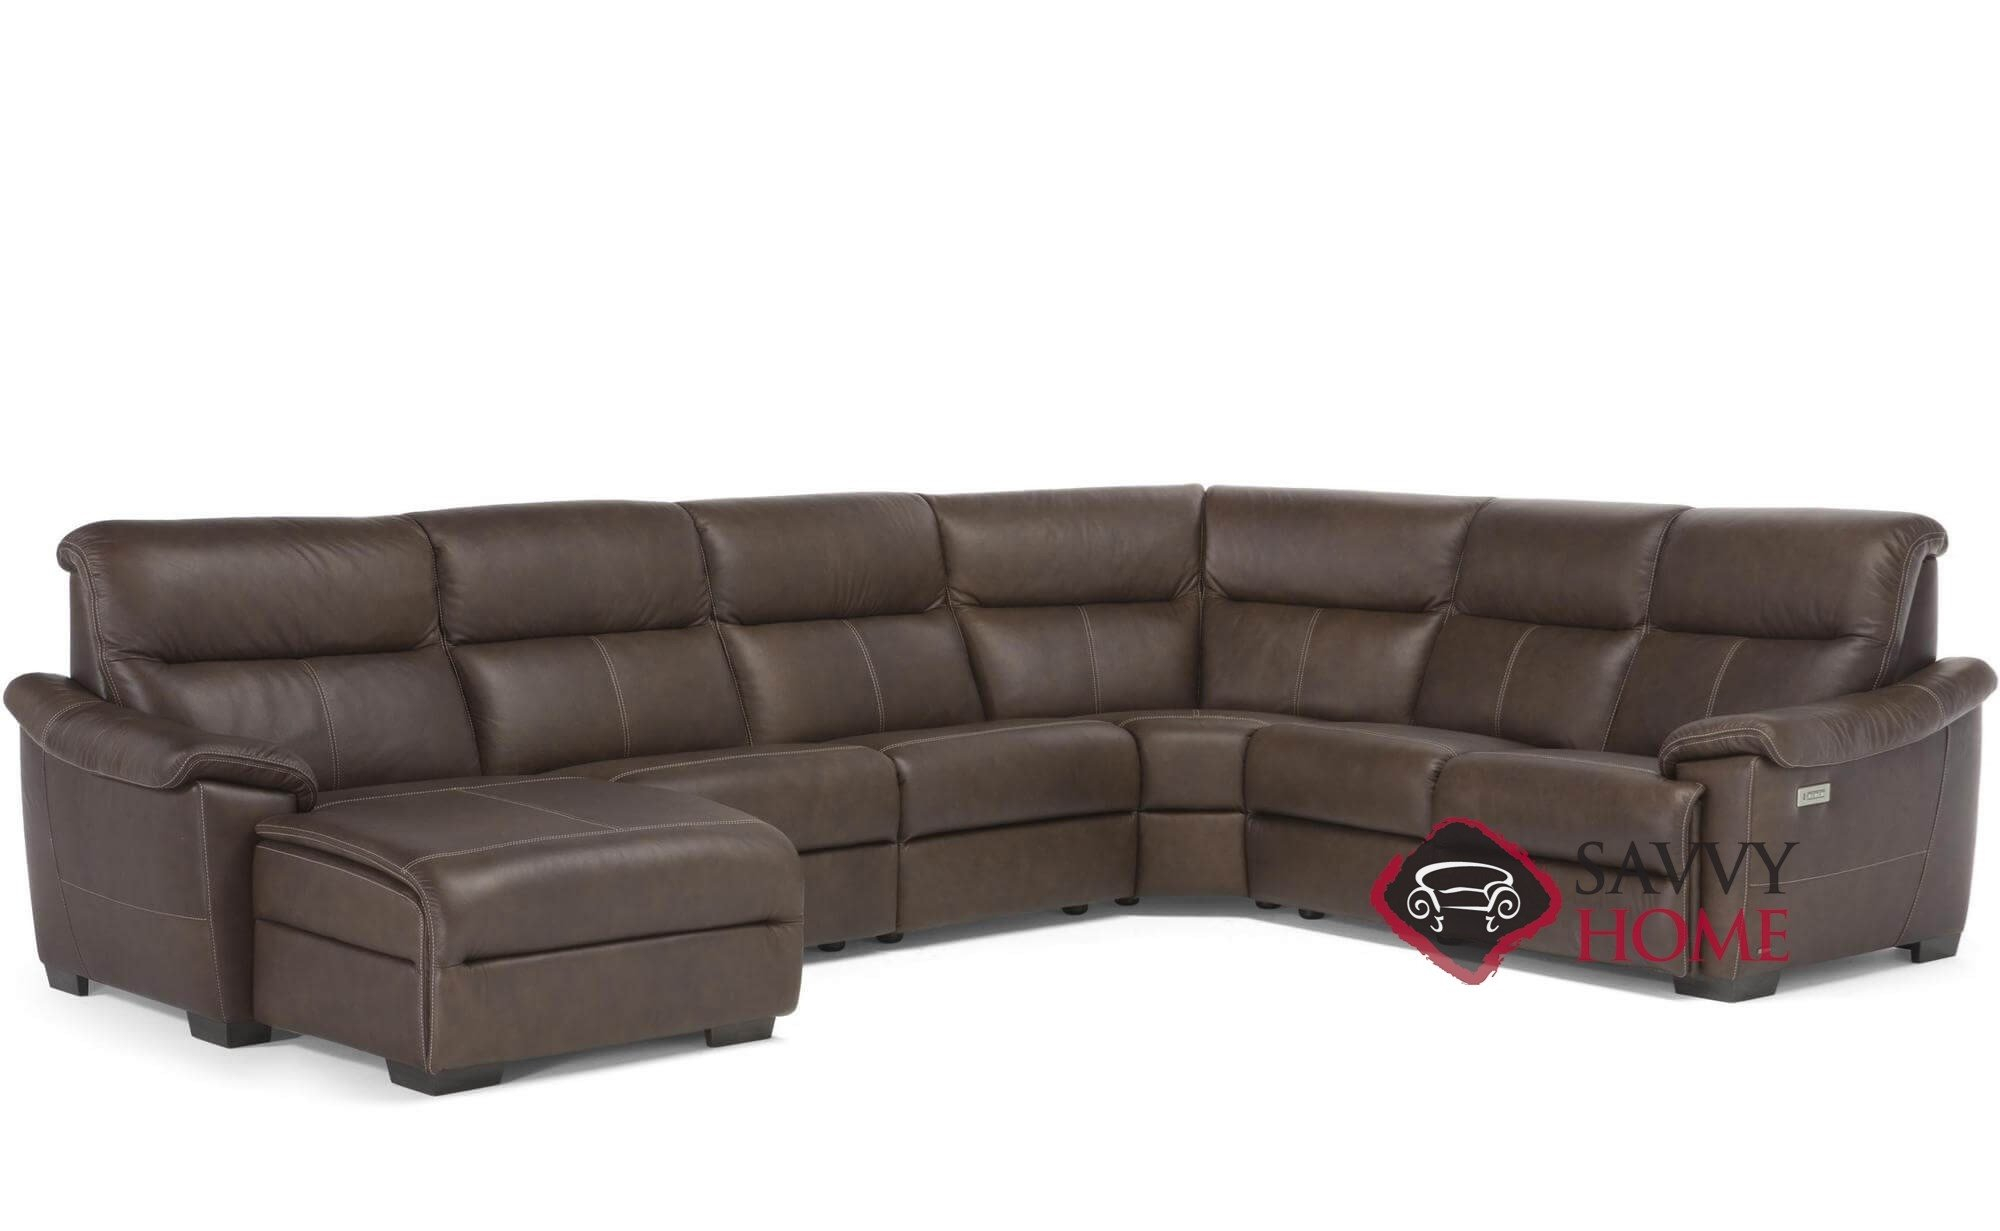 Customizable Power Reclining Sectional Sofa | Taraba Home Throughout Titan Leather Power Reclining Sofas (View 6 of 15)